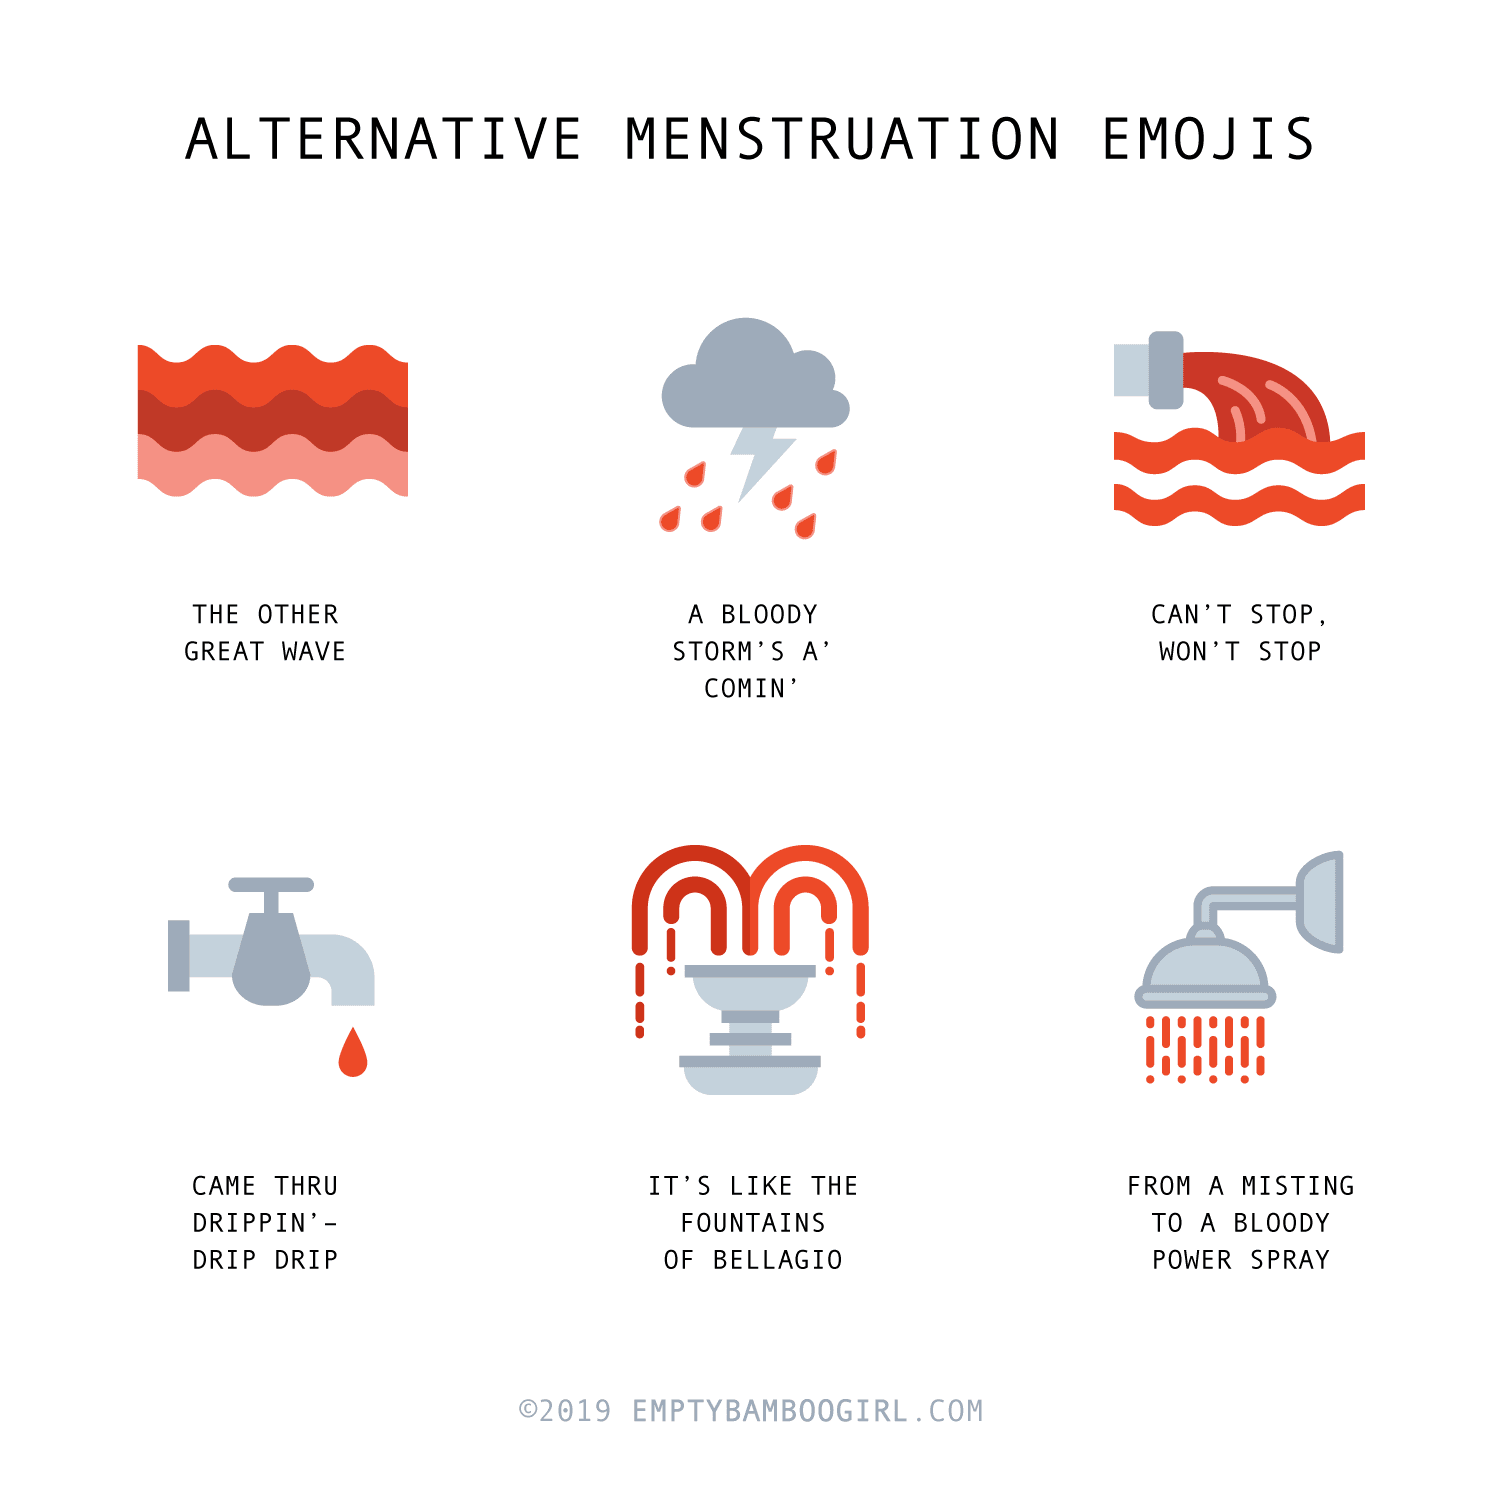 Menstruation Alternative Emojis by Lillian Lee | EMPTY BAMBOO GIRL